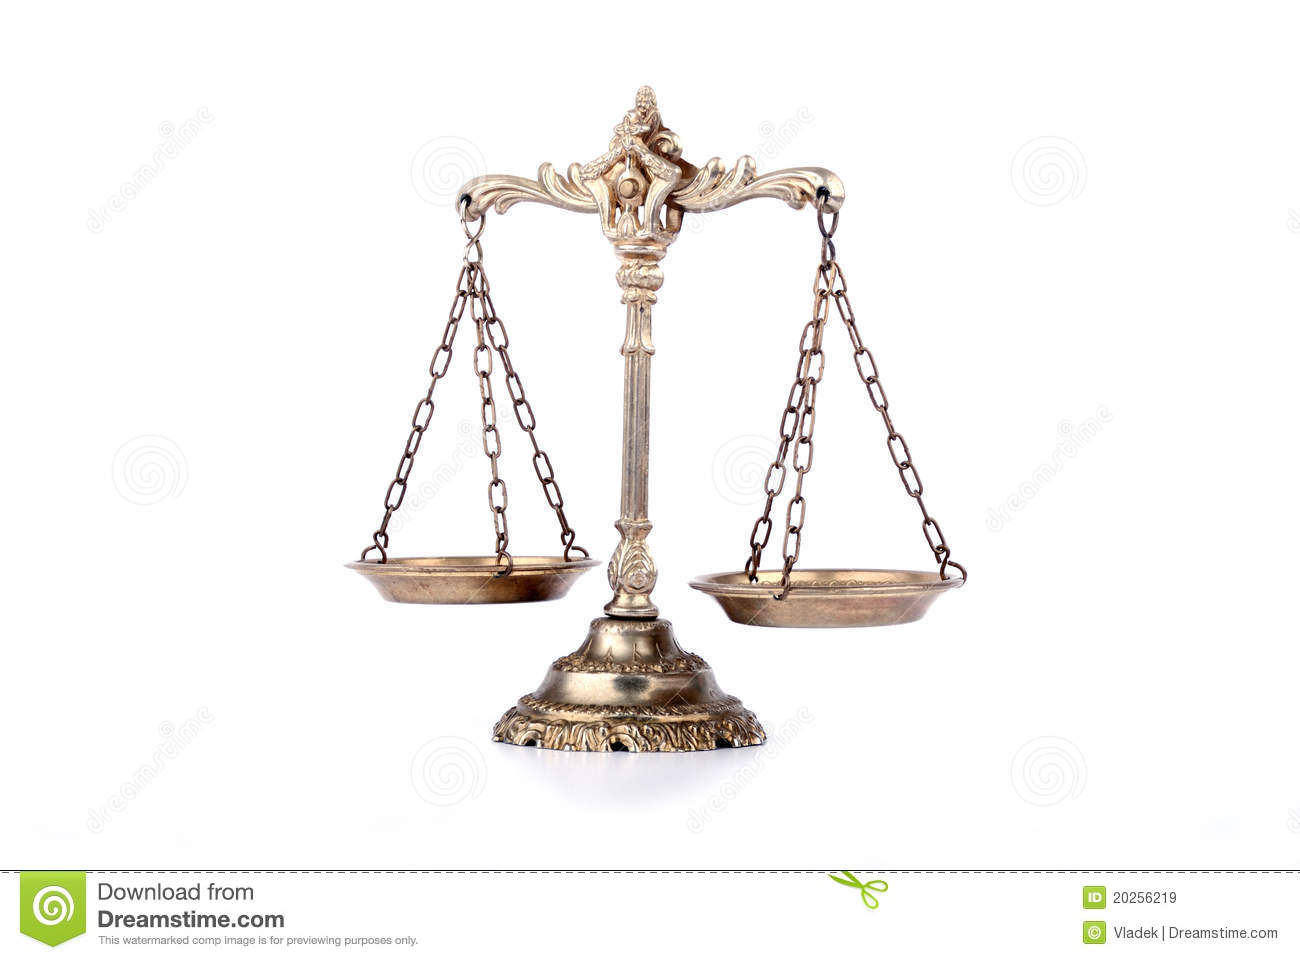 Decorative Scales Of Justice Stock Image - Image: 20256219